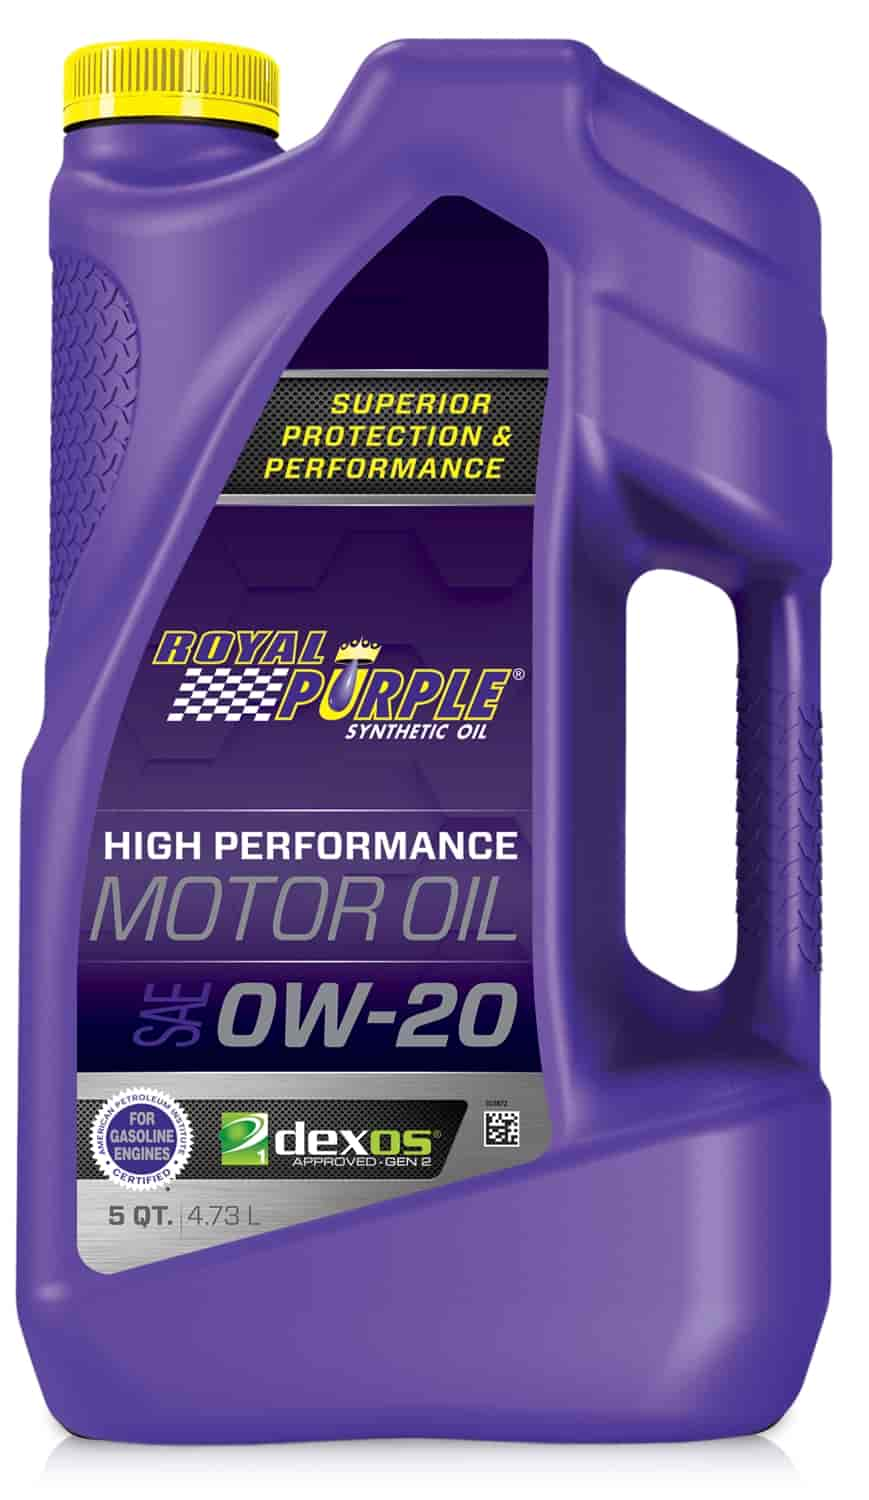 Royal Purple 51020 - Royal Purple Synthetic Motor Oils